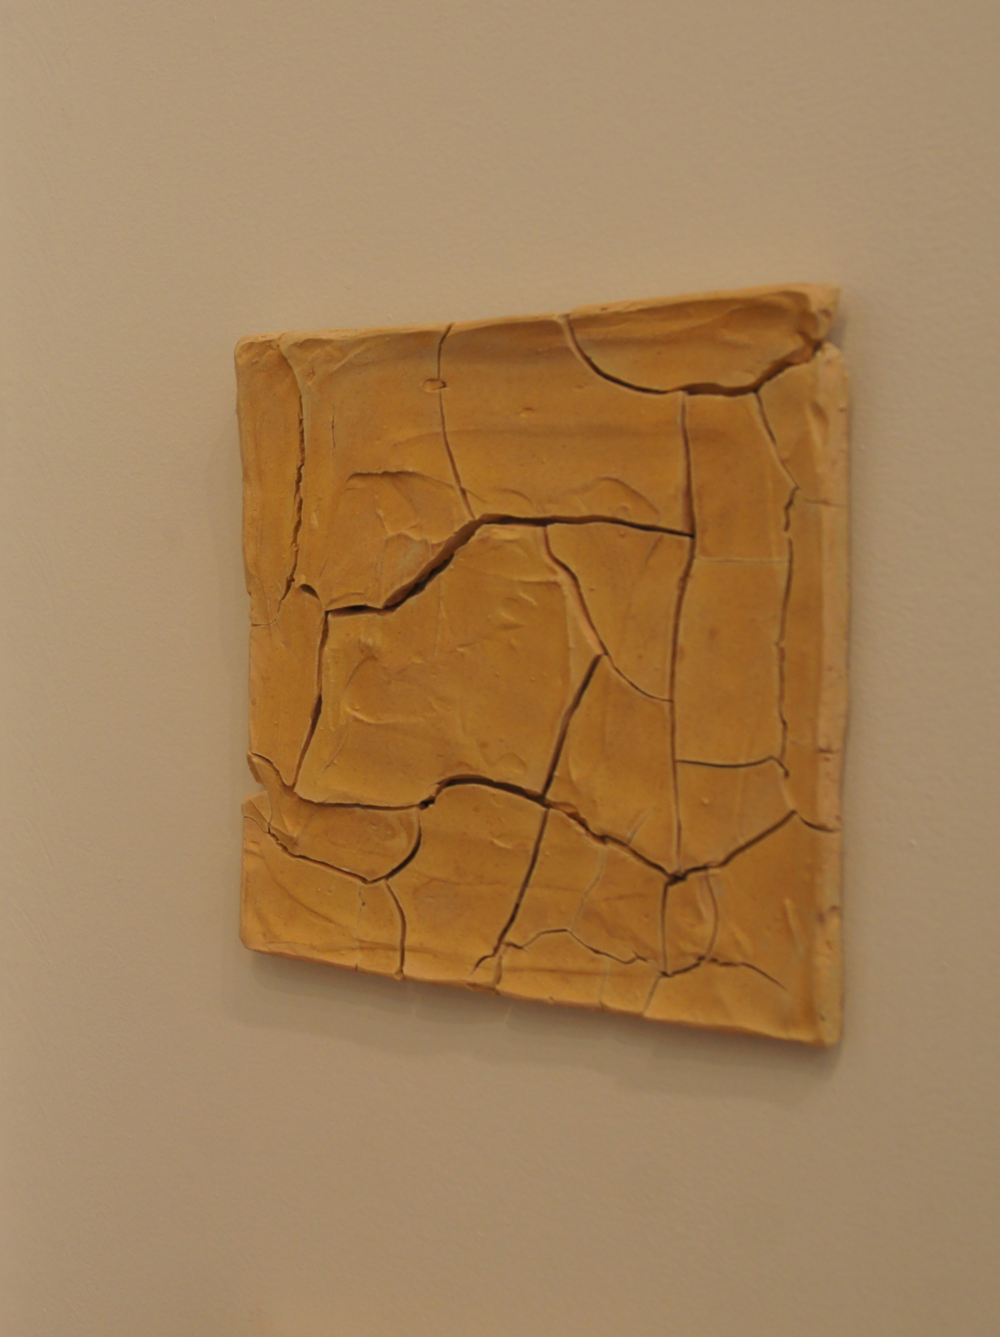 ASM_Jane Gordon_Parched Earth Wall Tiles_11x11_Clay, terra sigellata, tile mastic, MDF, steel plate_200.png